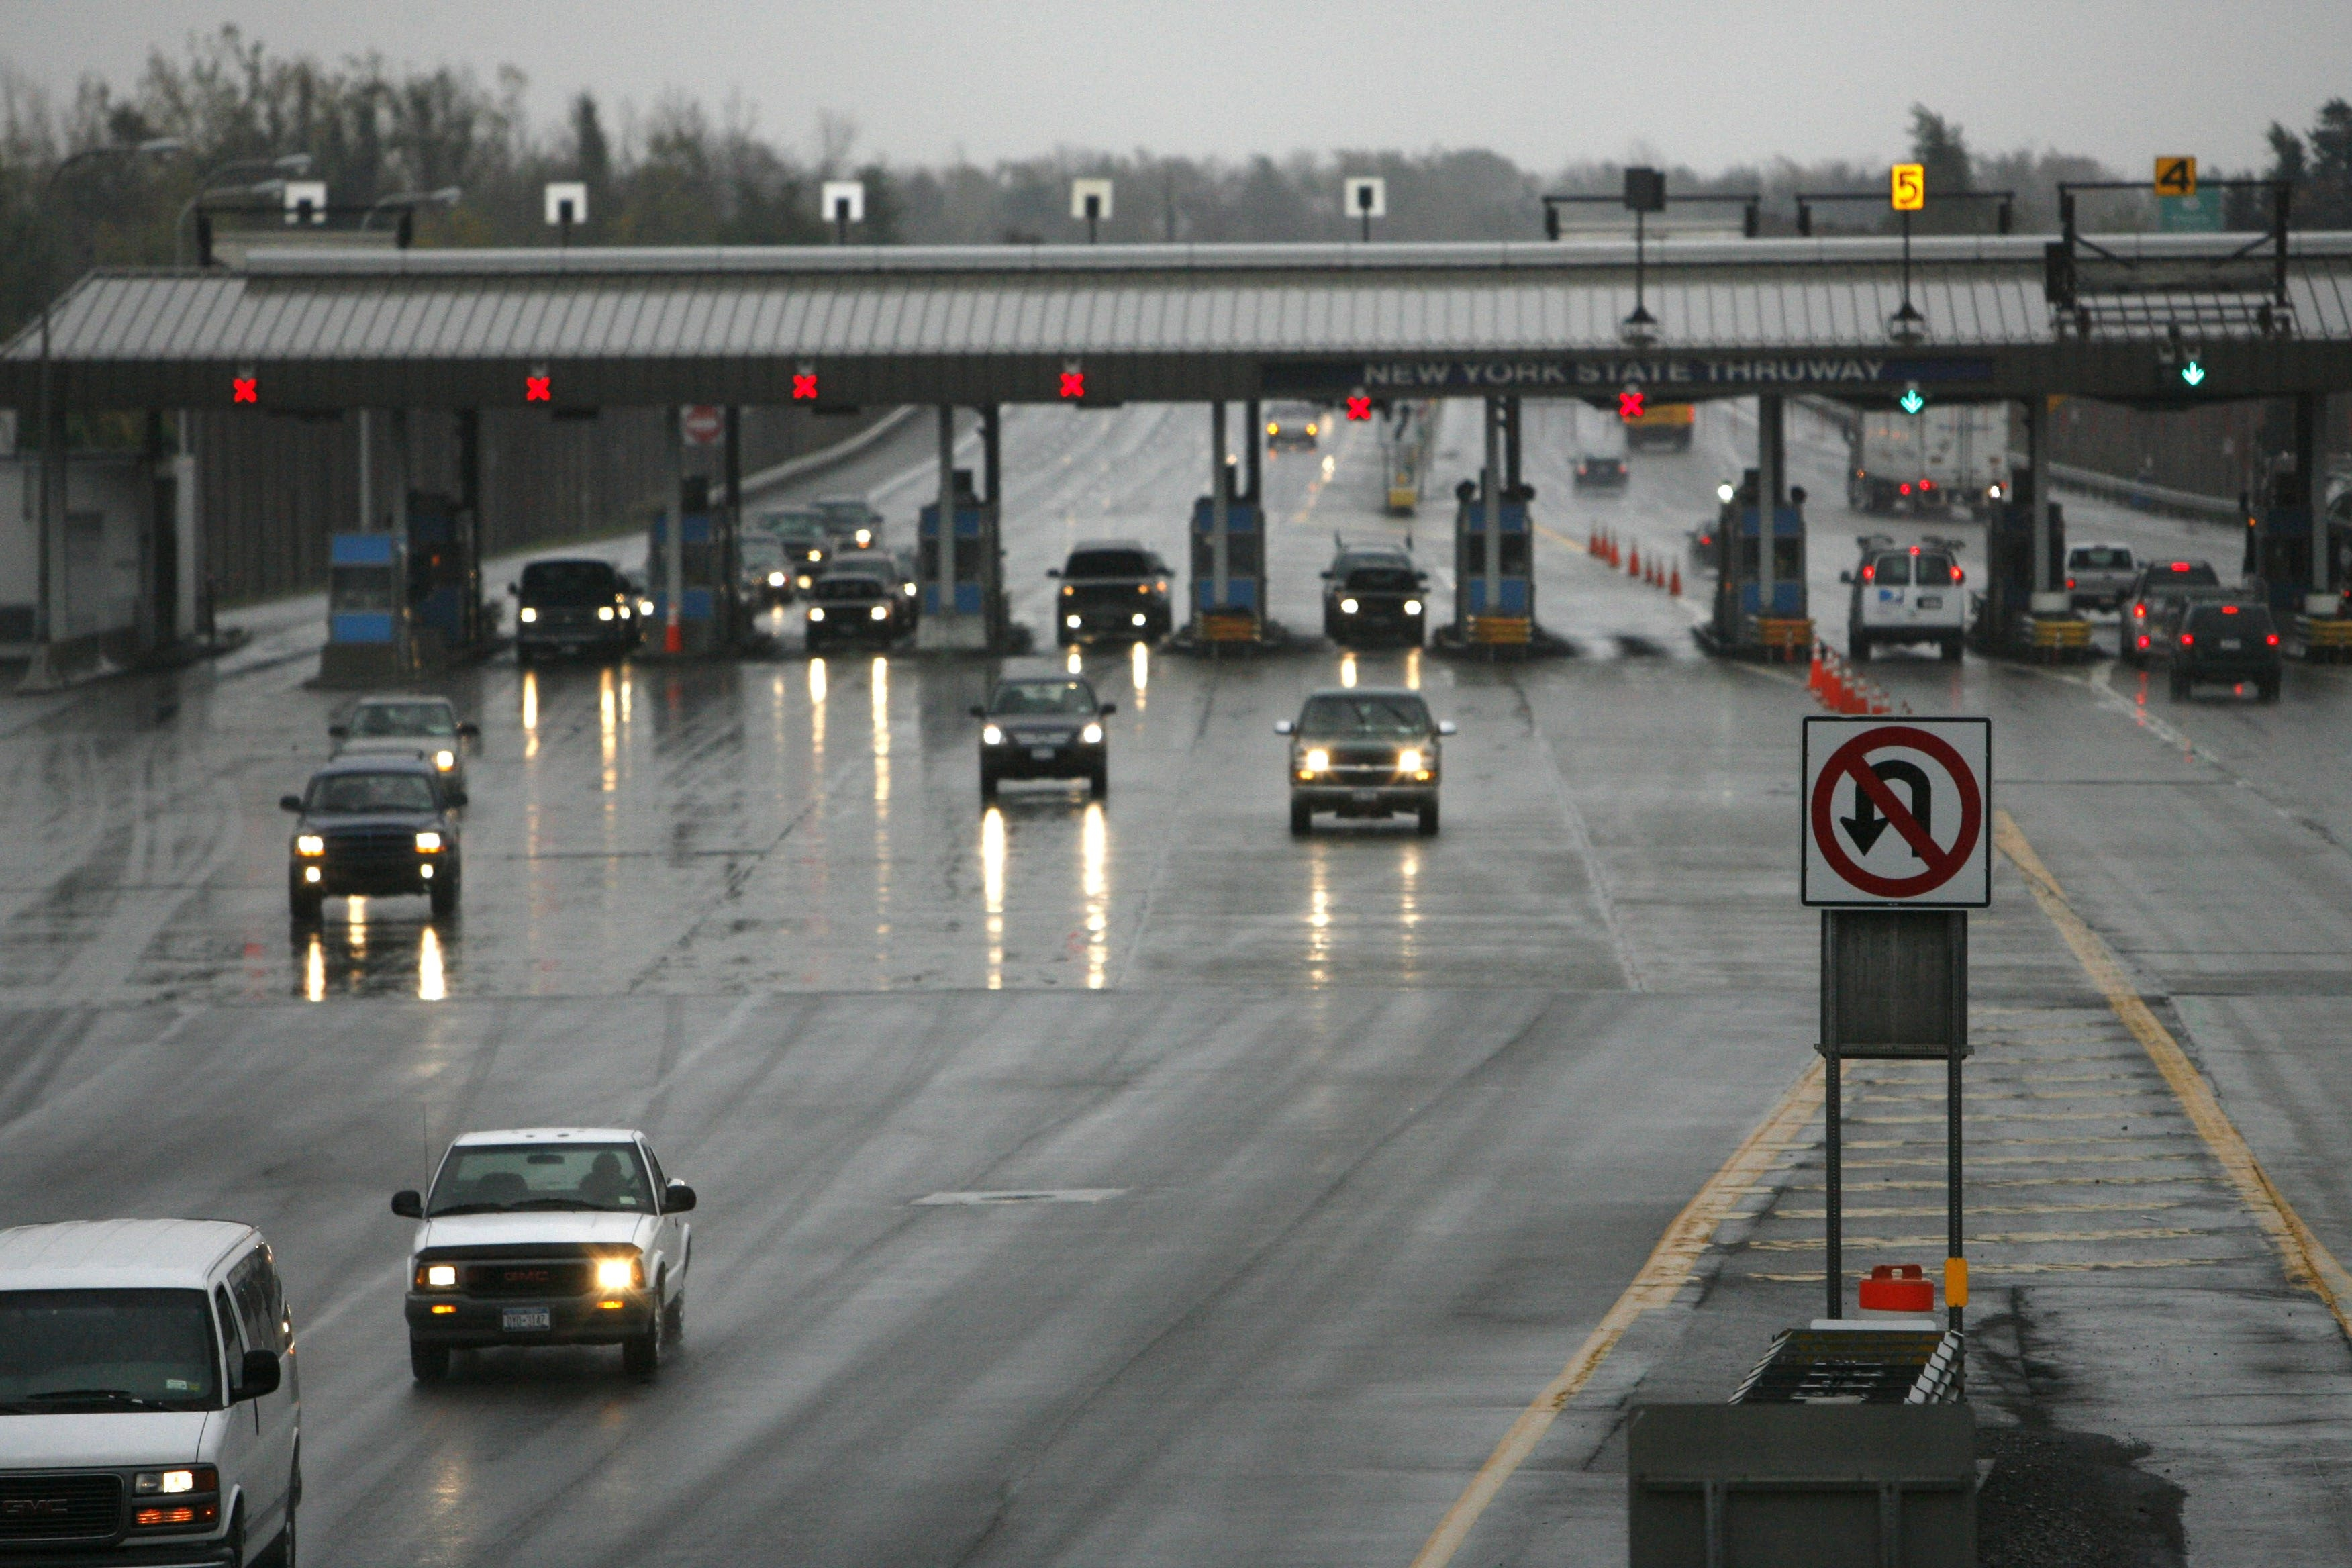 Cars traveling on the New York State Thruway pass through the Williamsville toll barrier.